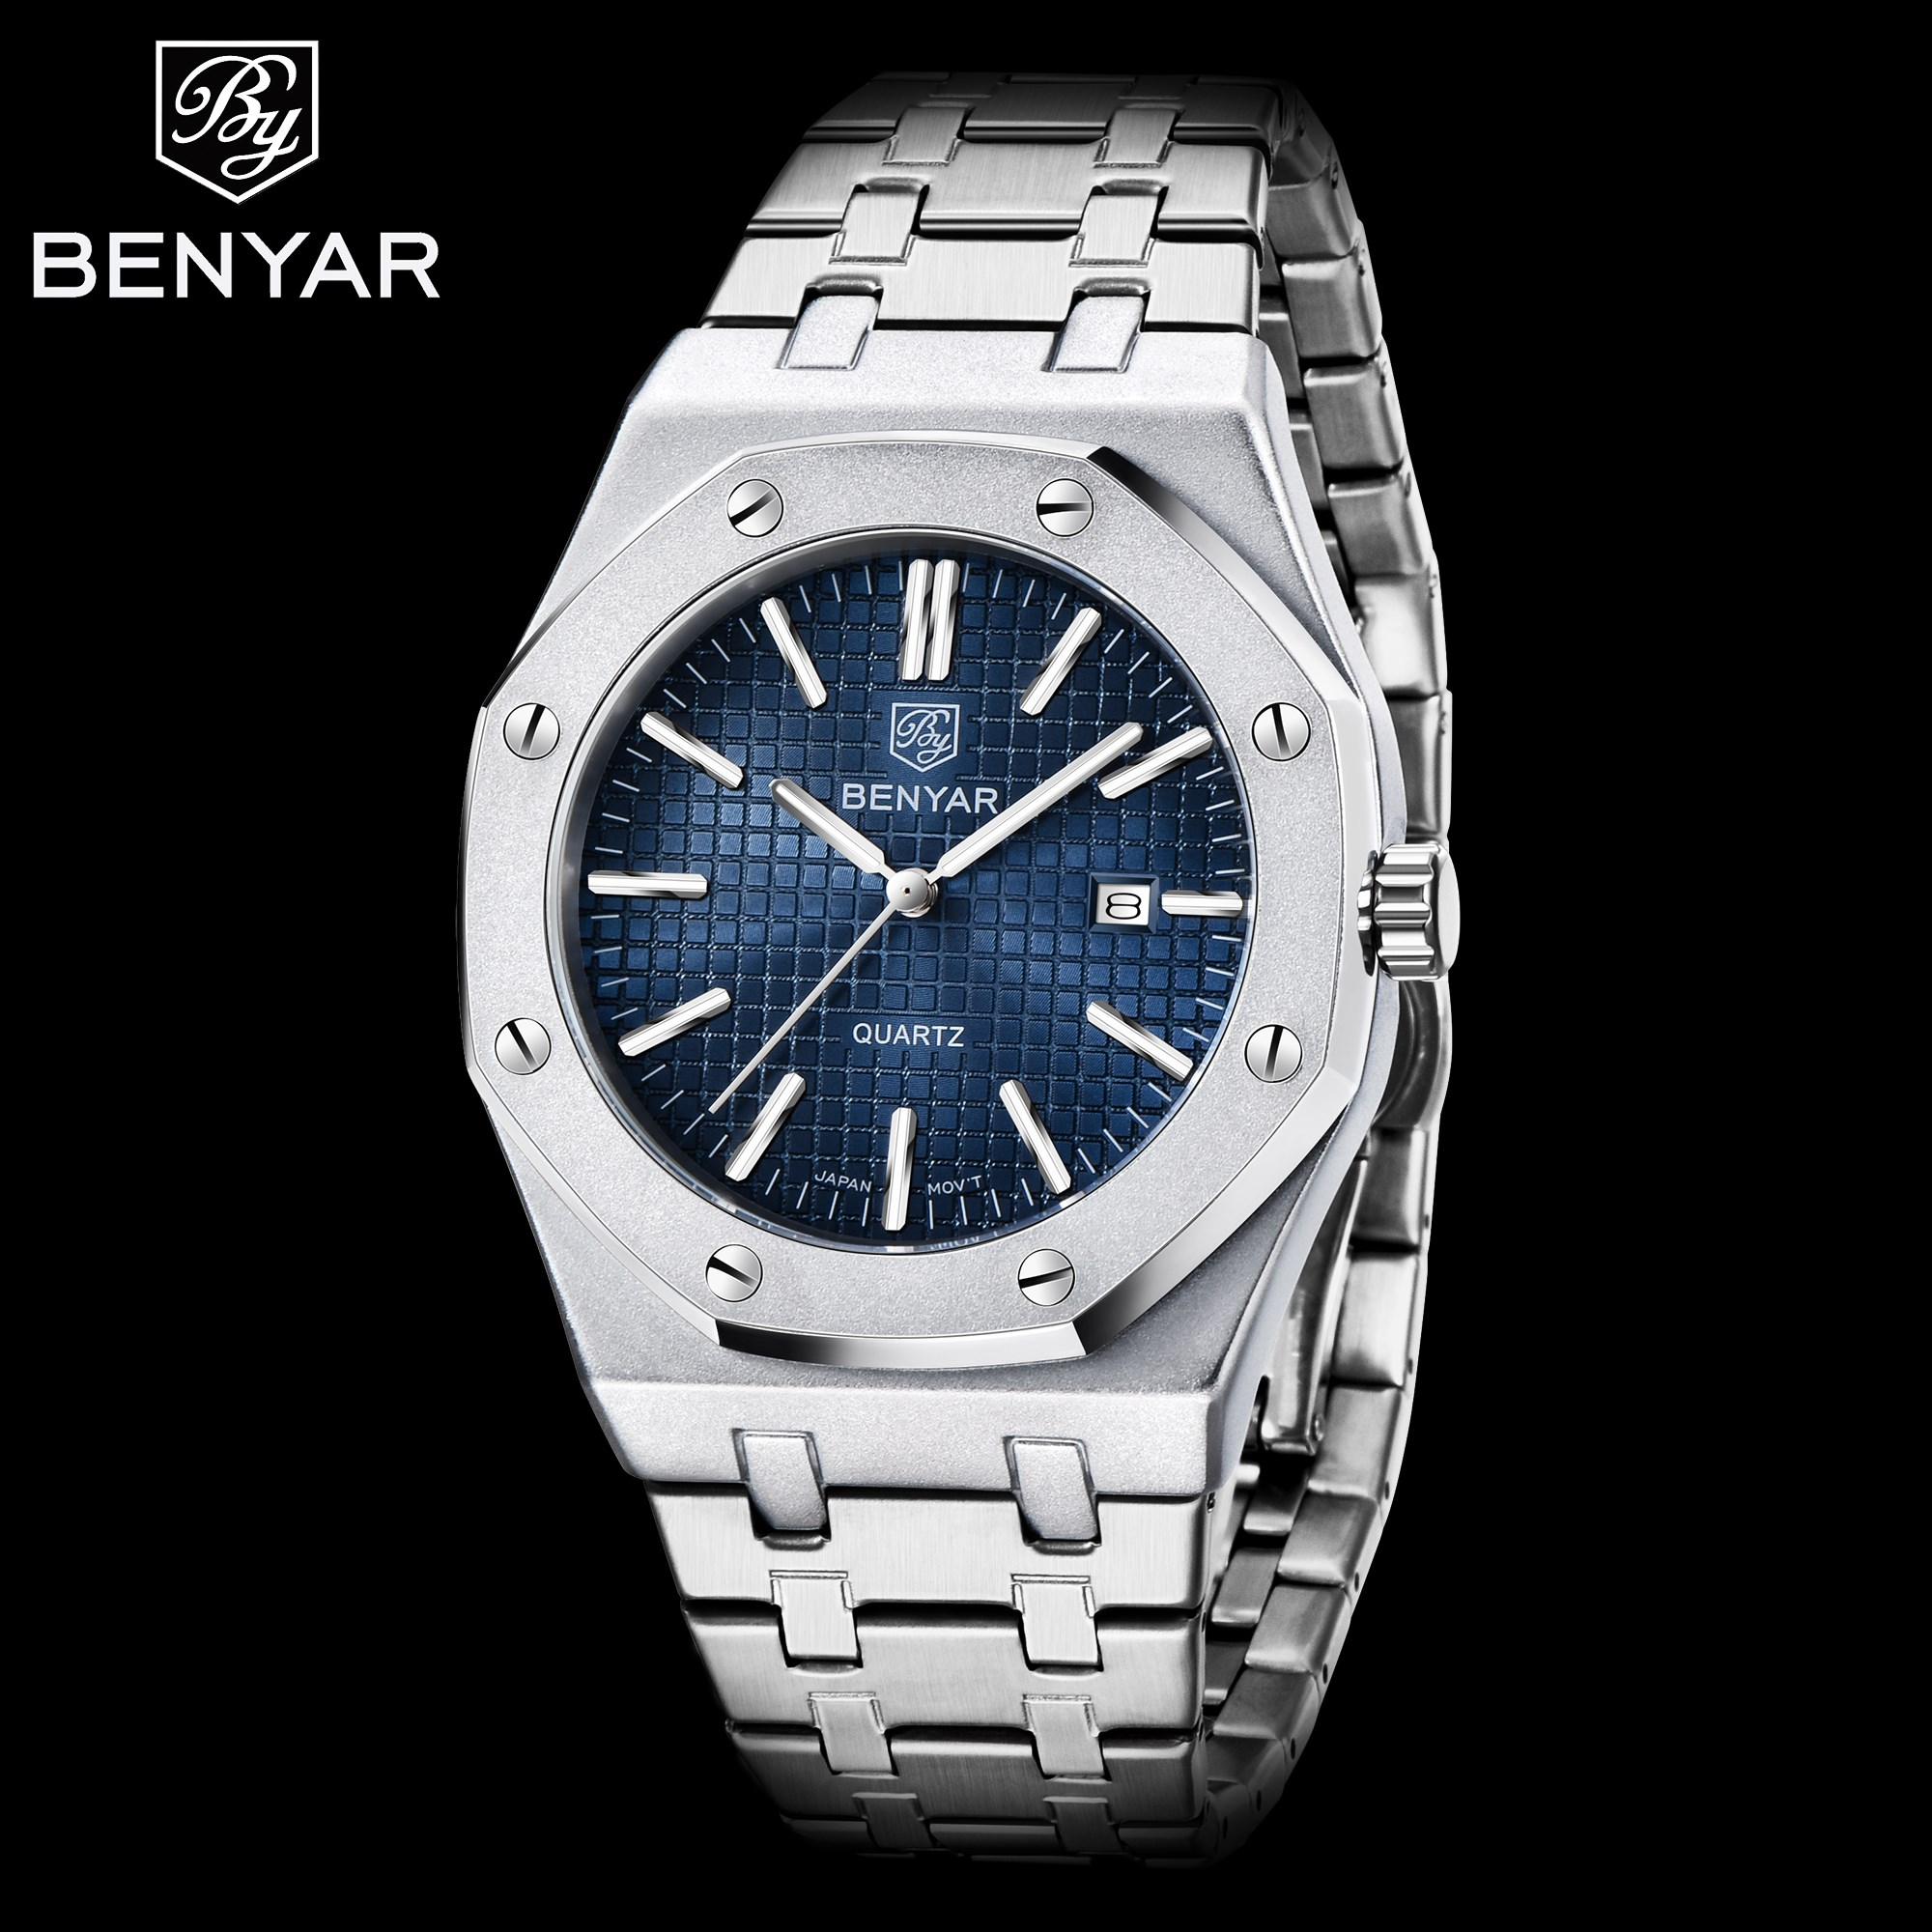 Men Watches BENYAR 2020 High-End Luxury Brand Quartz Watch Analog Waterproof Sport Army Military Wrist Watch Relogio Masculino